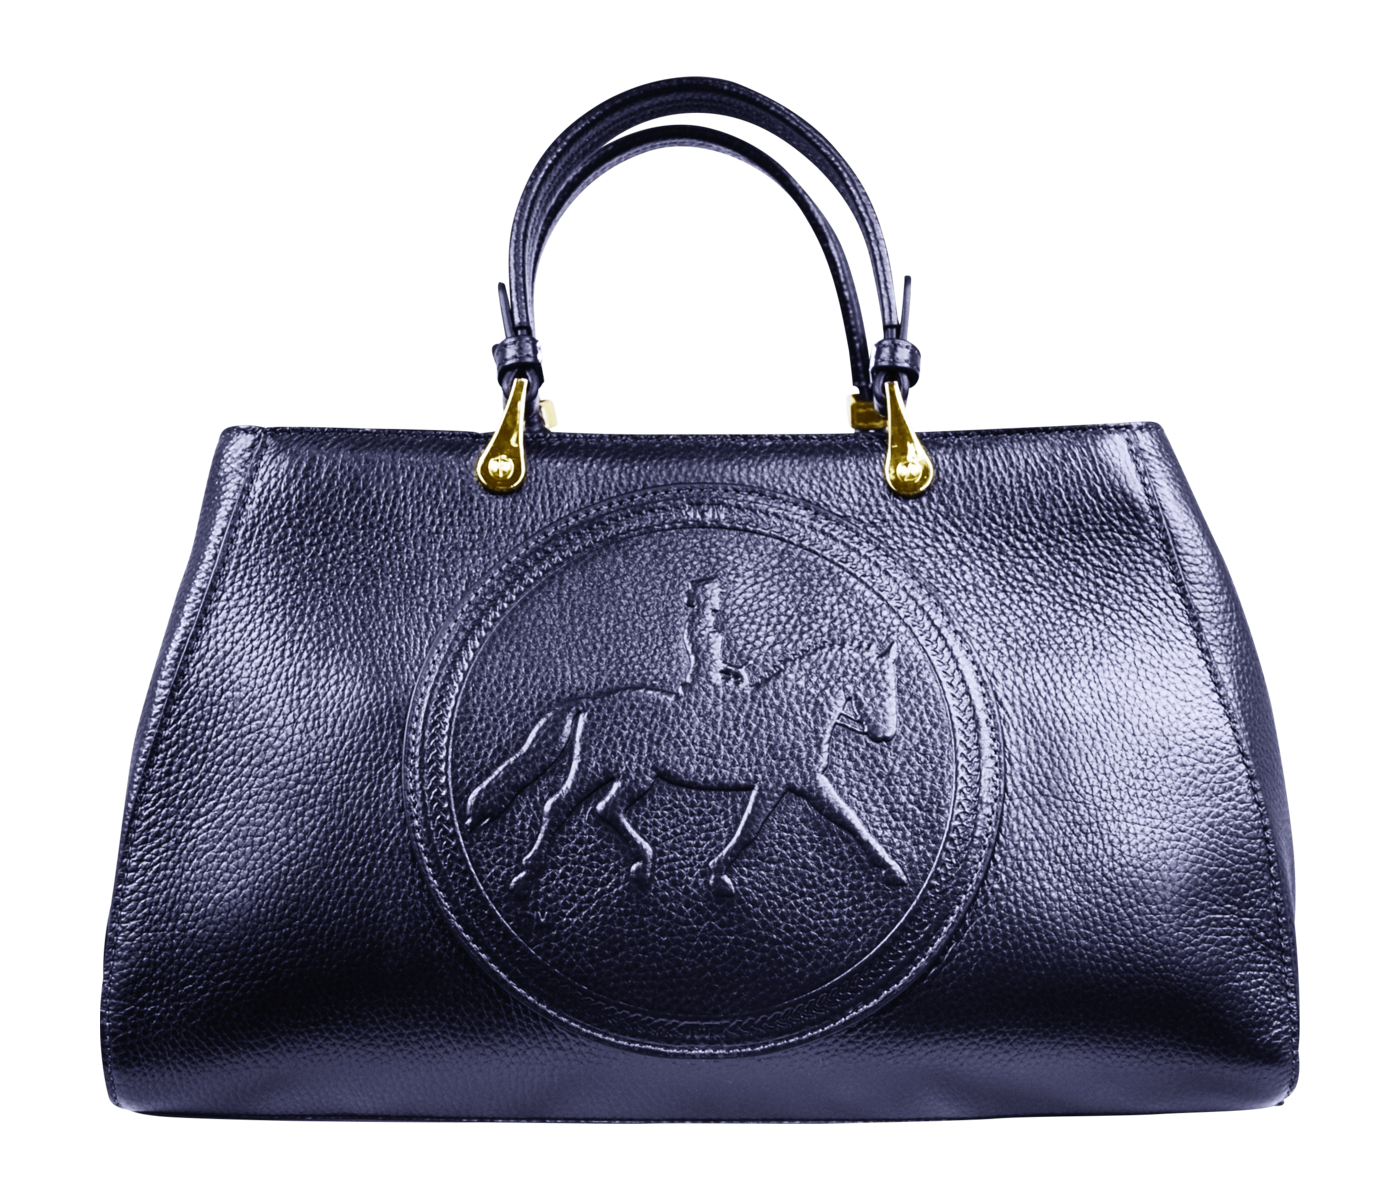 Tucker Tweed Leather Handbags Nautical Navy / Dressage Sedgefield Legacy: Dressage